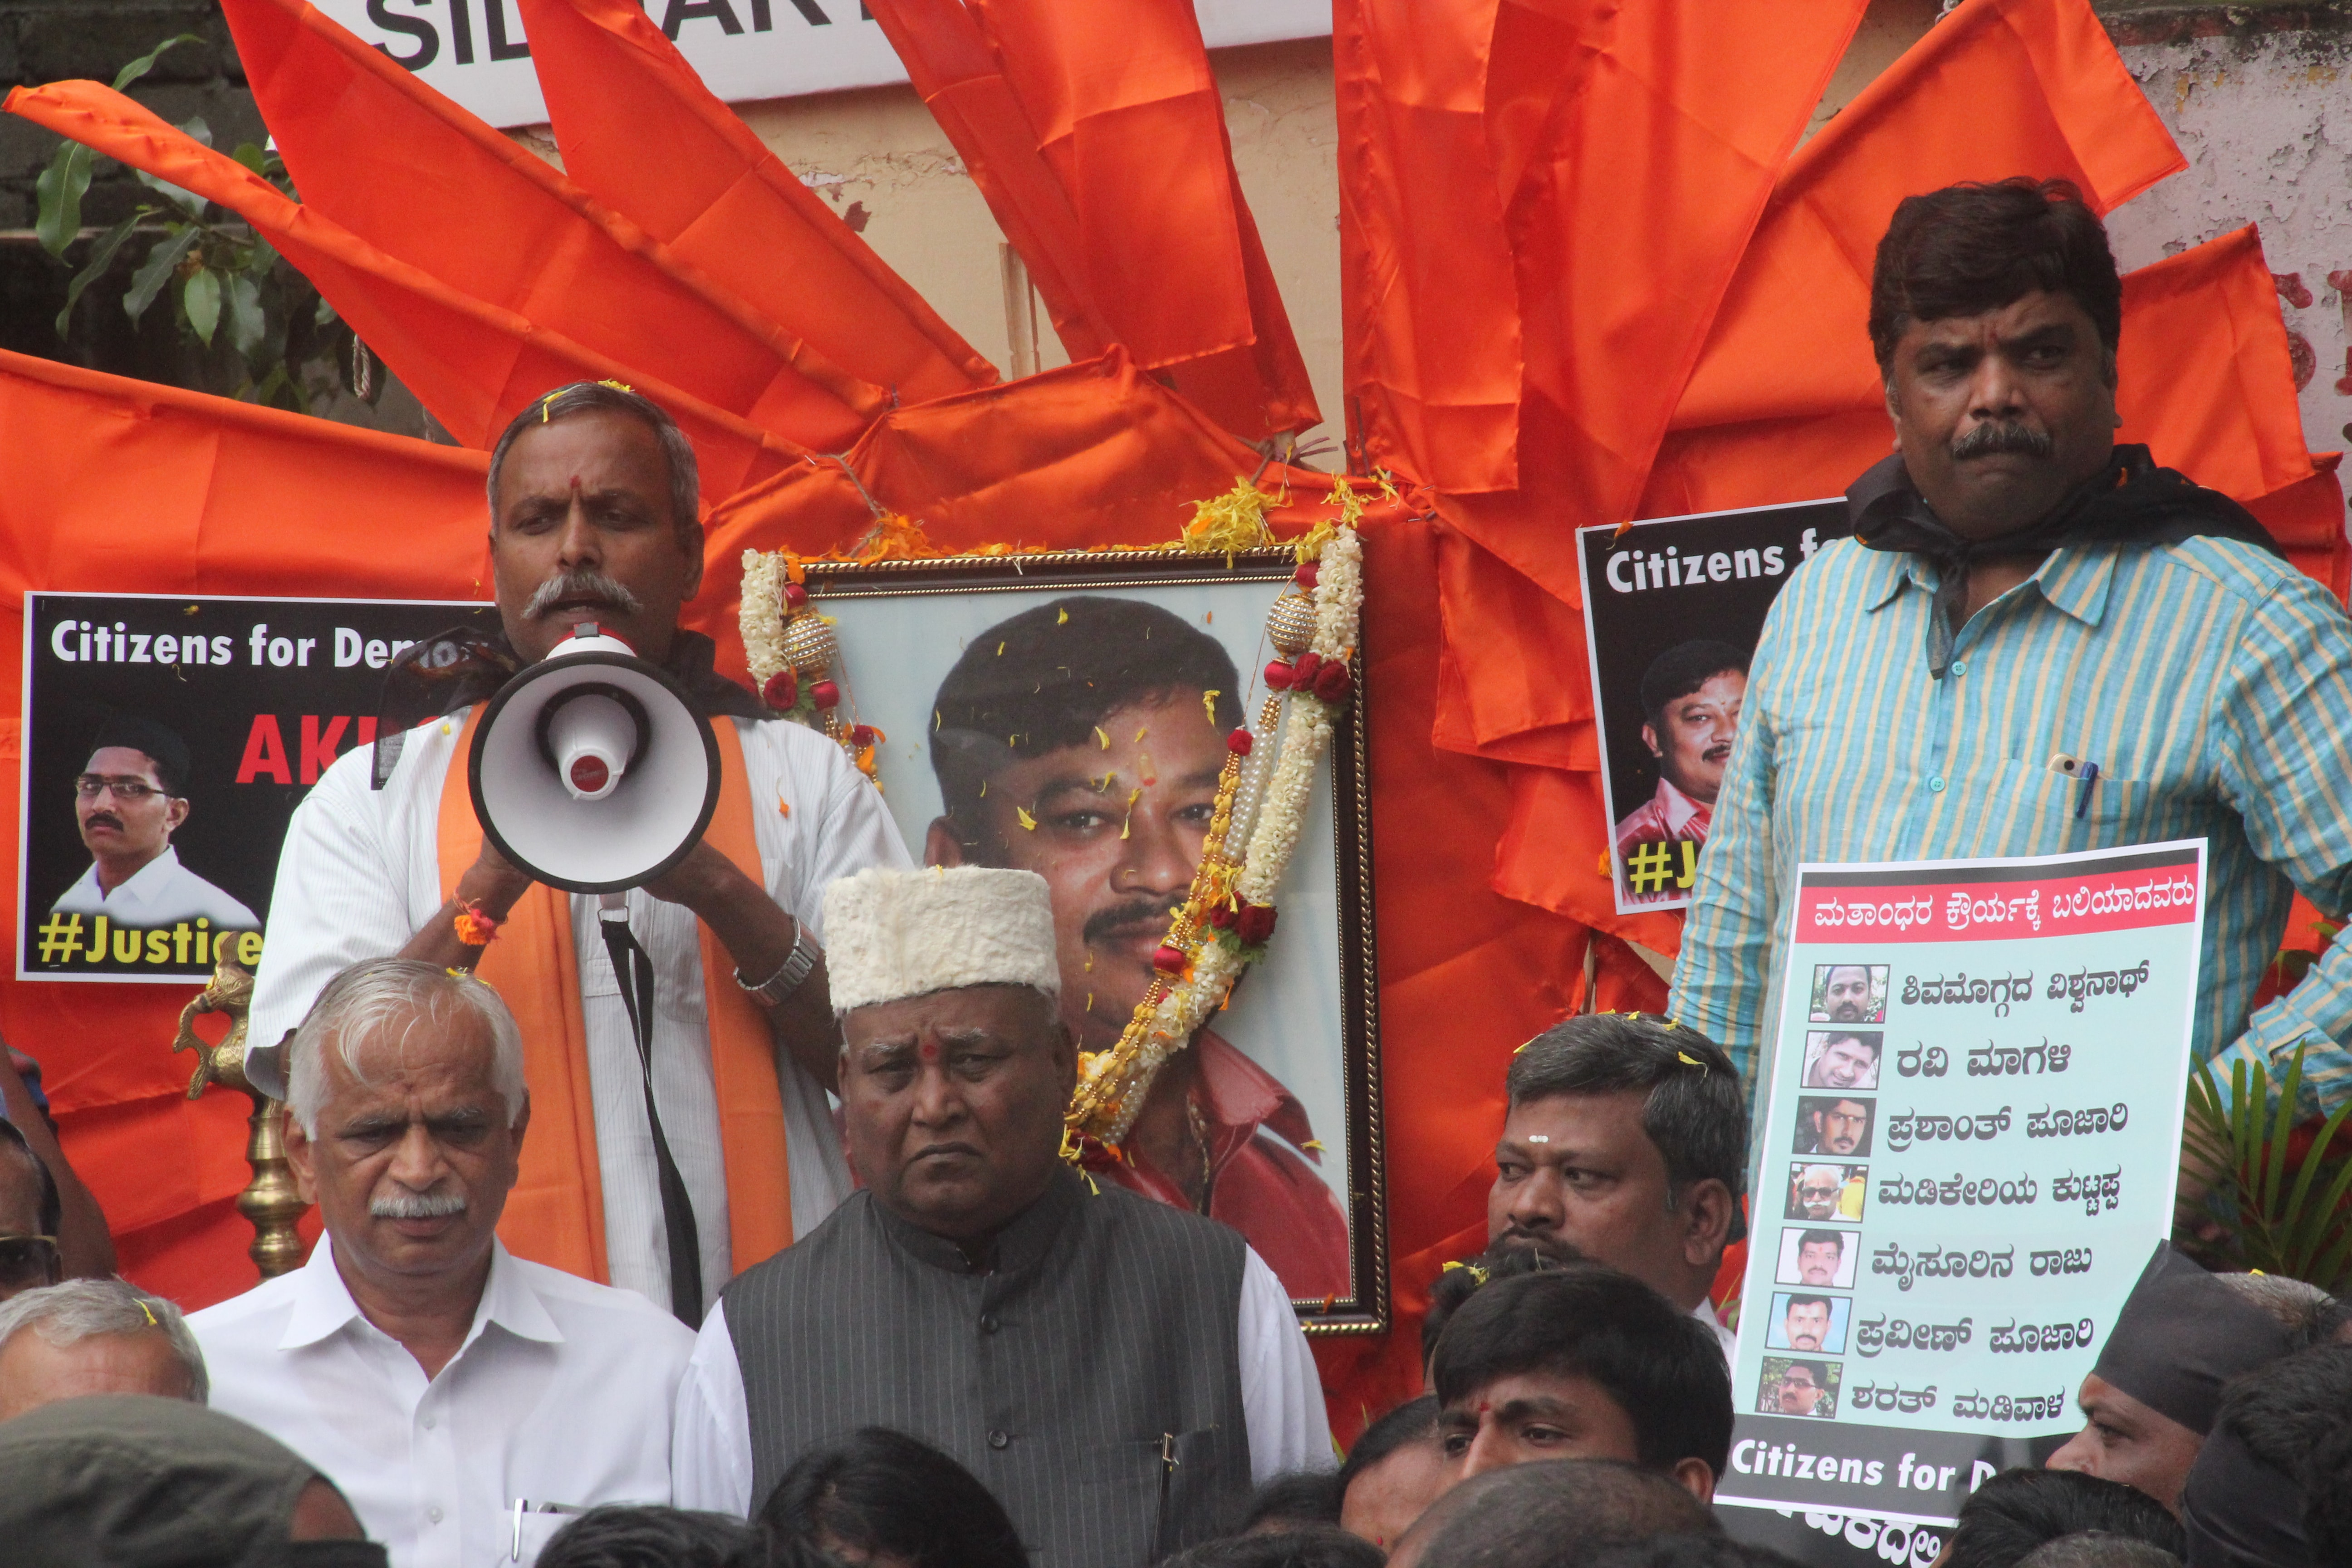 Citizens for Democracy Demands for the ban of PFI, SPDI and other radical Islamist Organizations